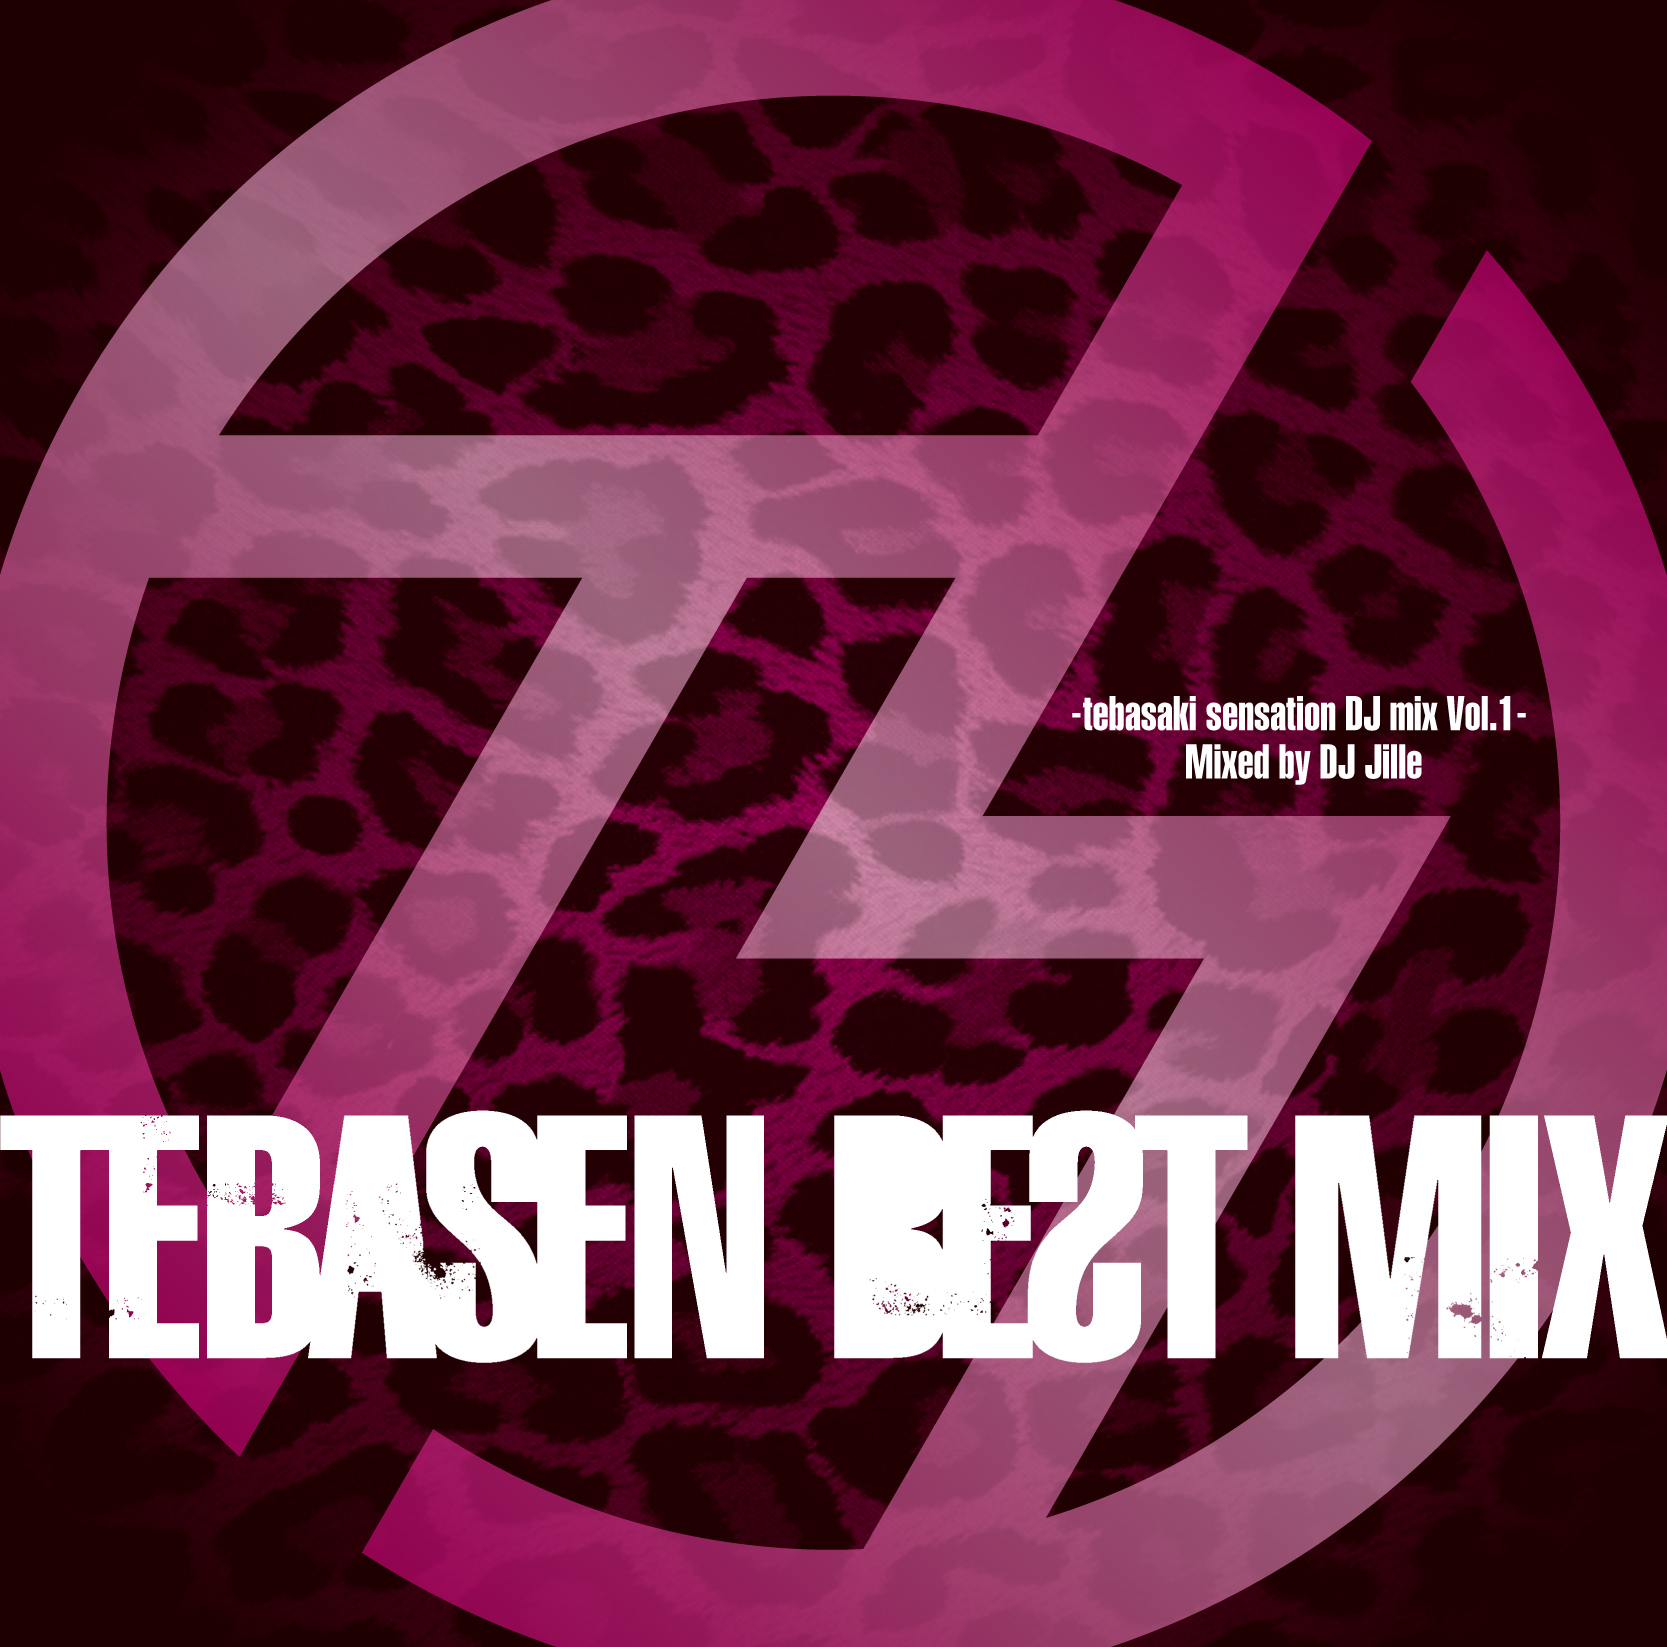 TEBASEN BEST MIX -tebasaki sensation DJ mix Vol.1- Mixed by DJ Jille